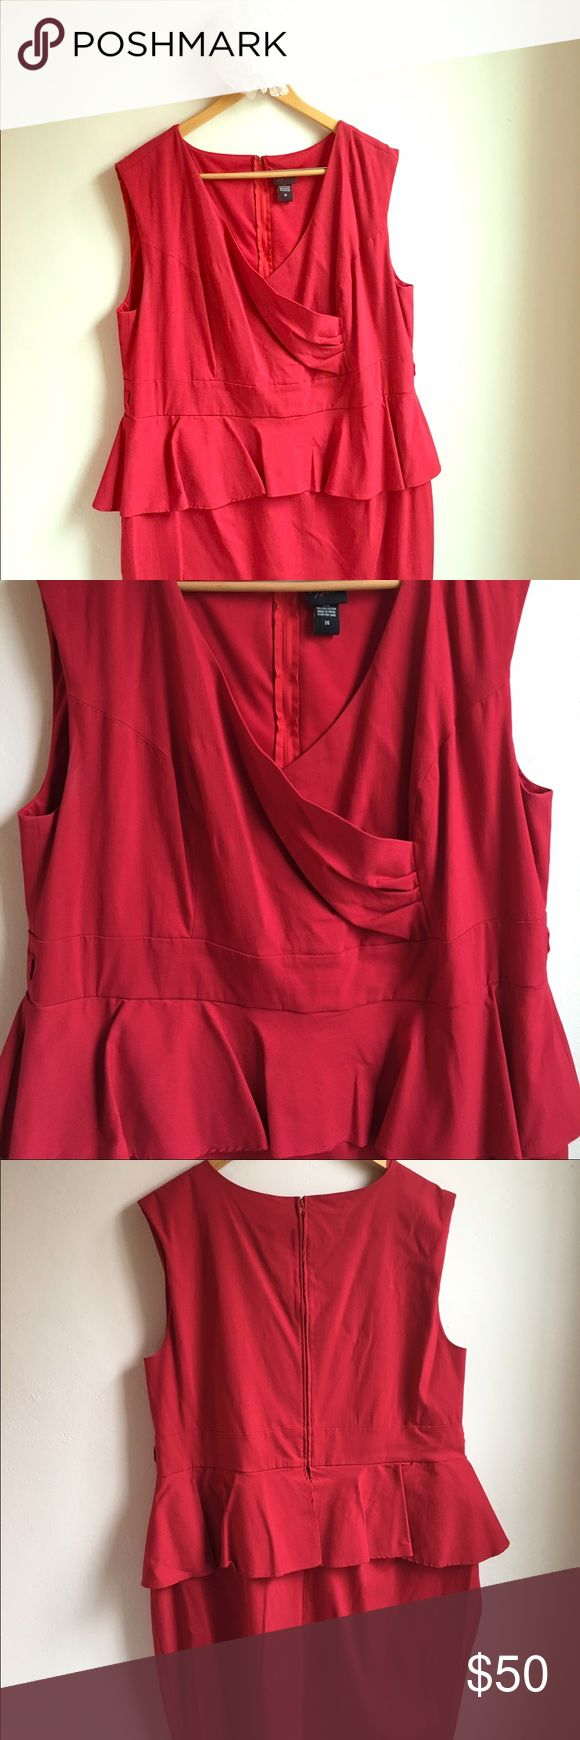 Red Torrid peplum special occasion dress This red peplum dress is perfect for showing off the curves! It hugs the body with its thick stretch material, allowing you to have a great shape that doesn't show everything. Worn once torrid Dresses Midi